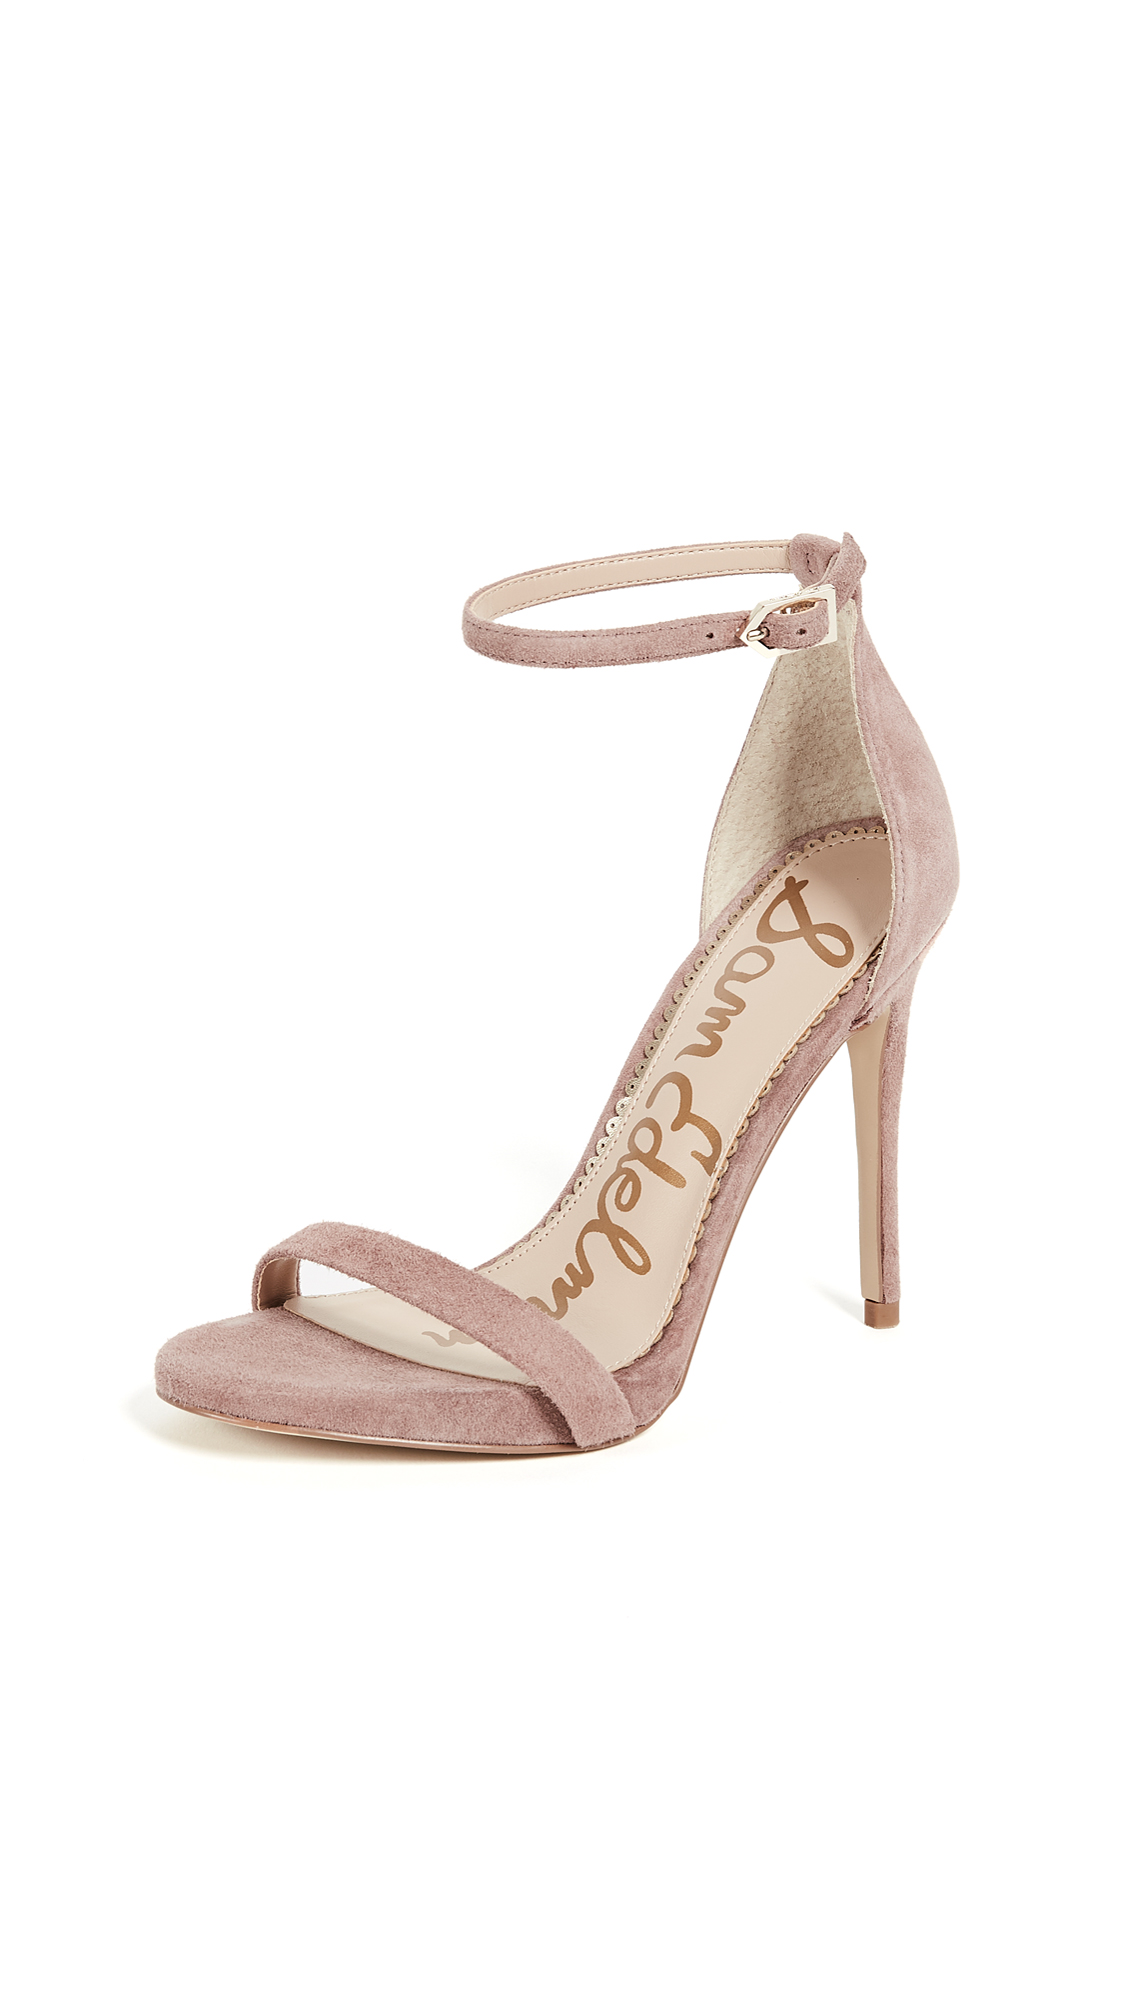 Sam Edelman Ariella Sandals - Dusty Rose